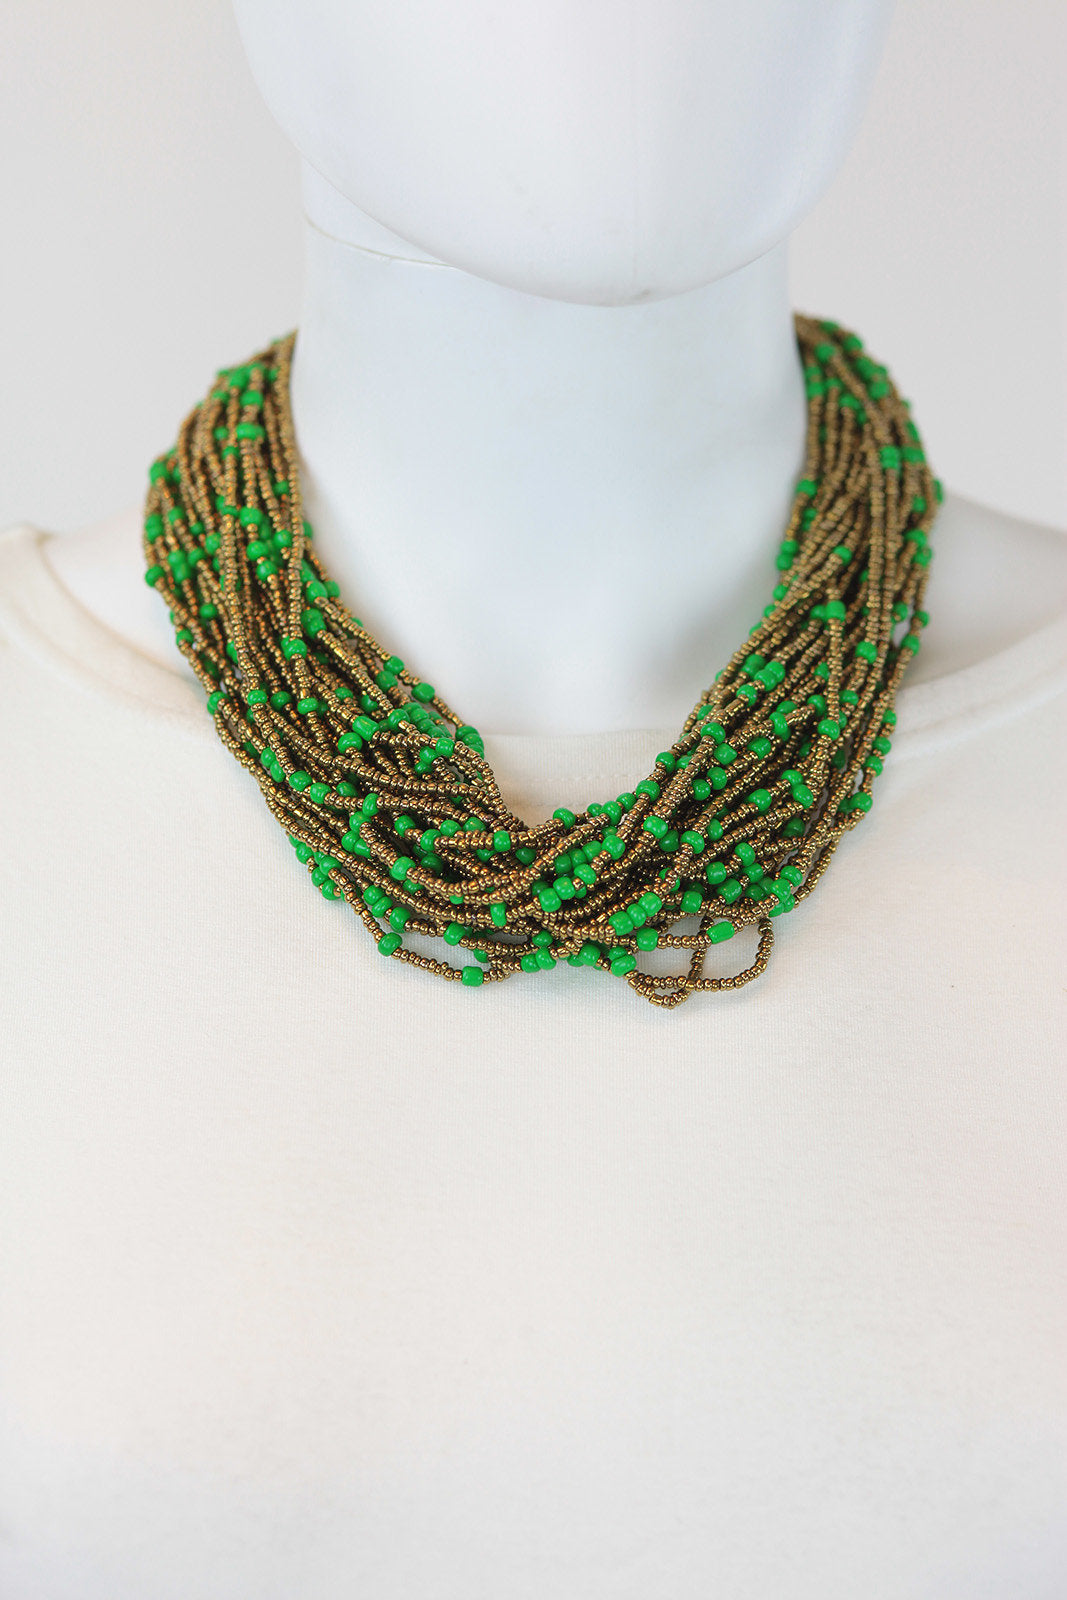 African Maasai Beaded Necklace-Green/Gold - Africas Closet